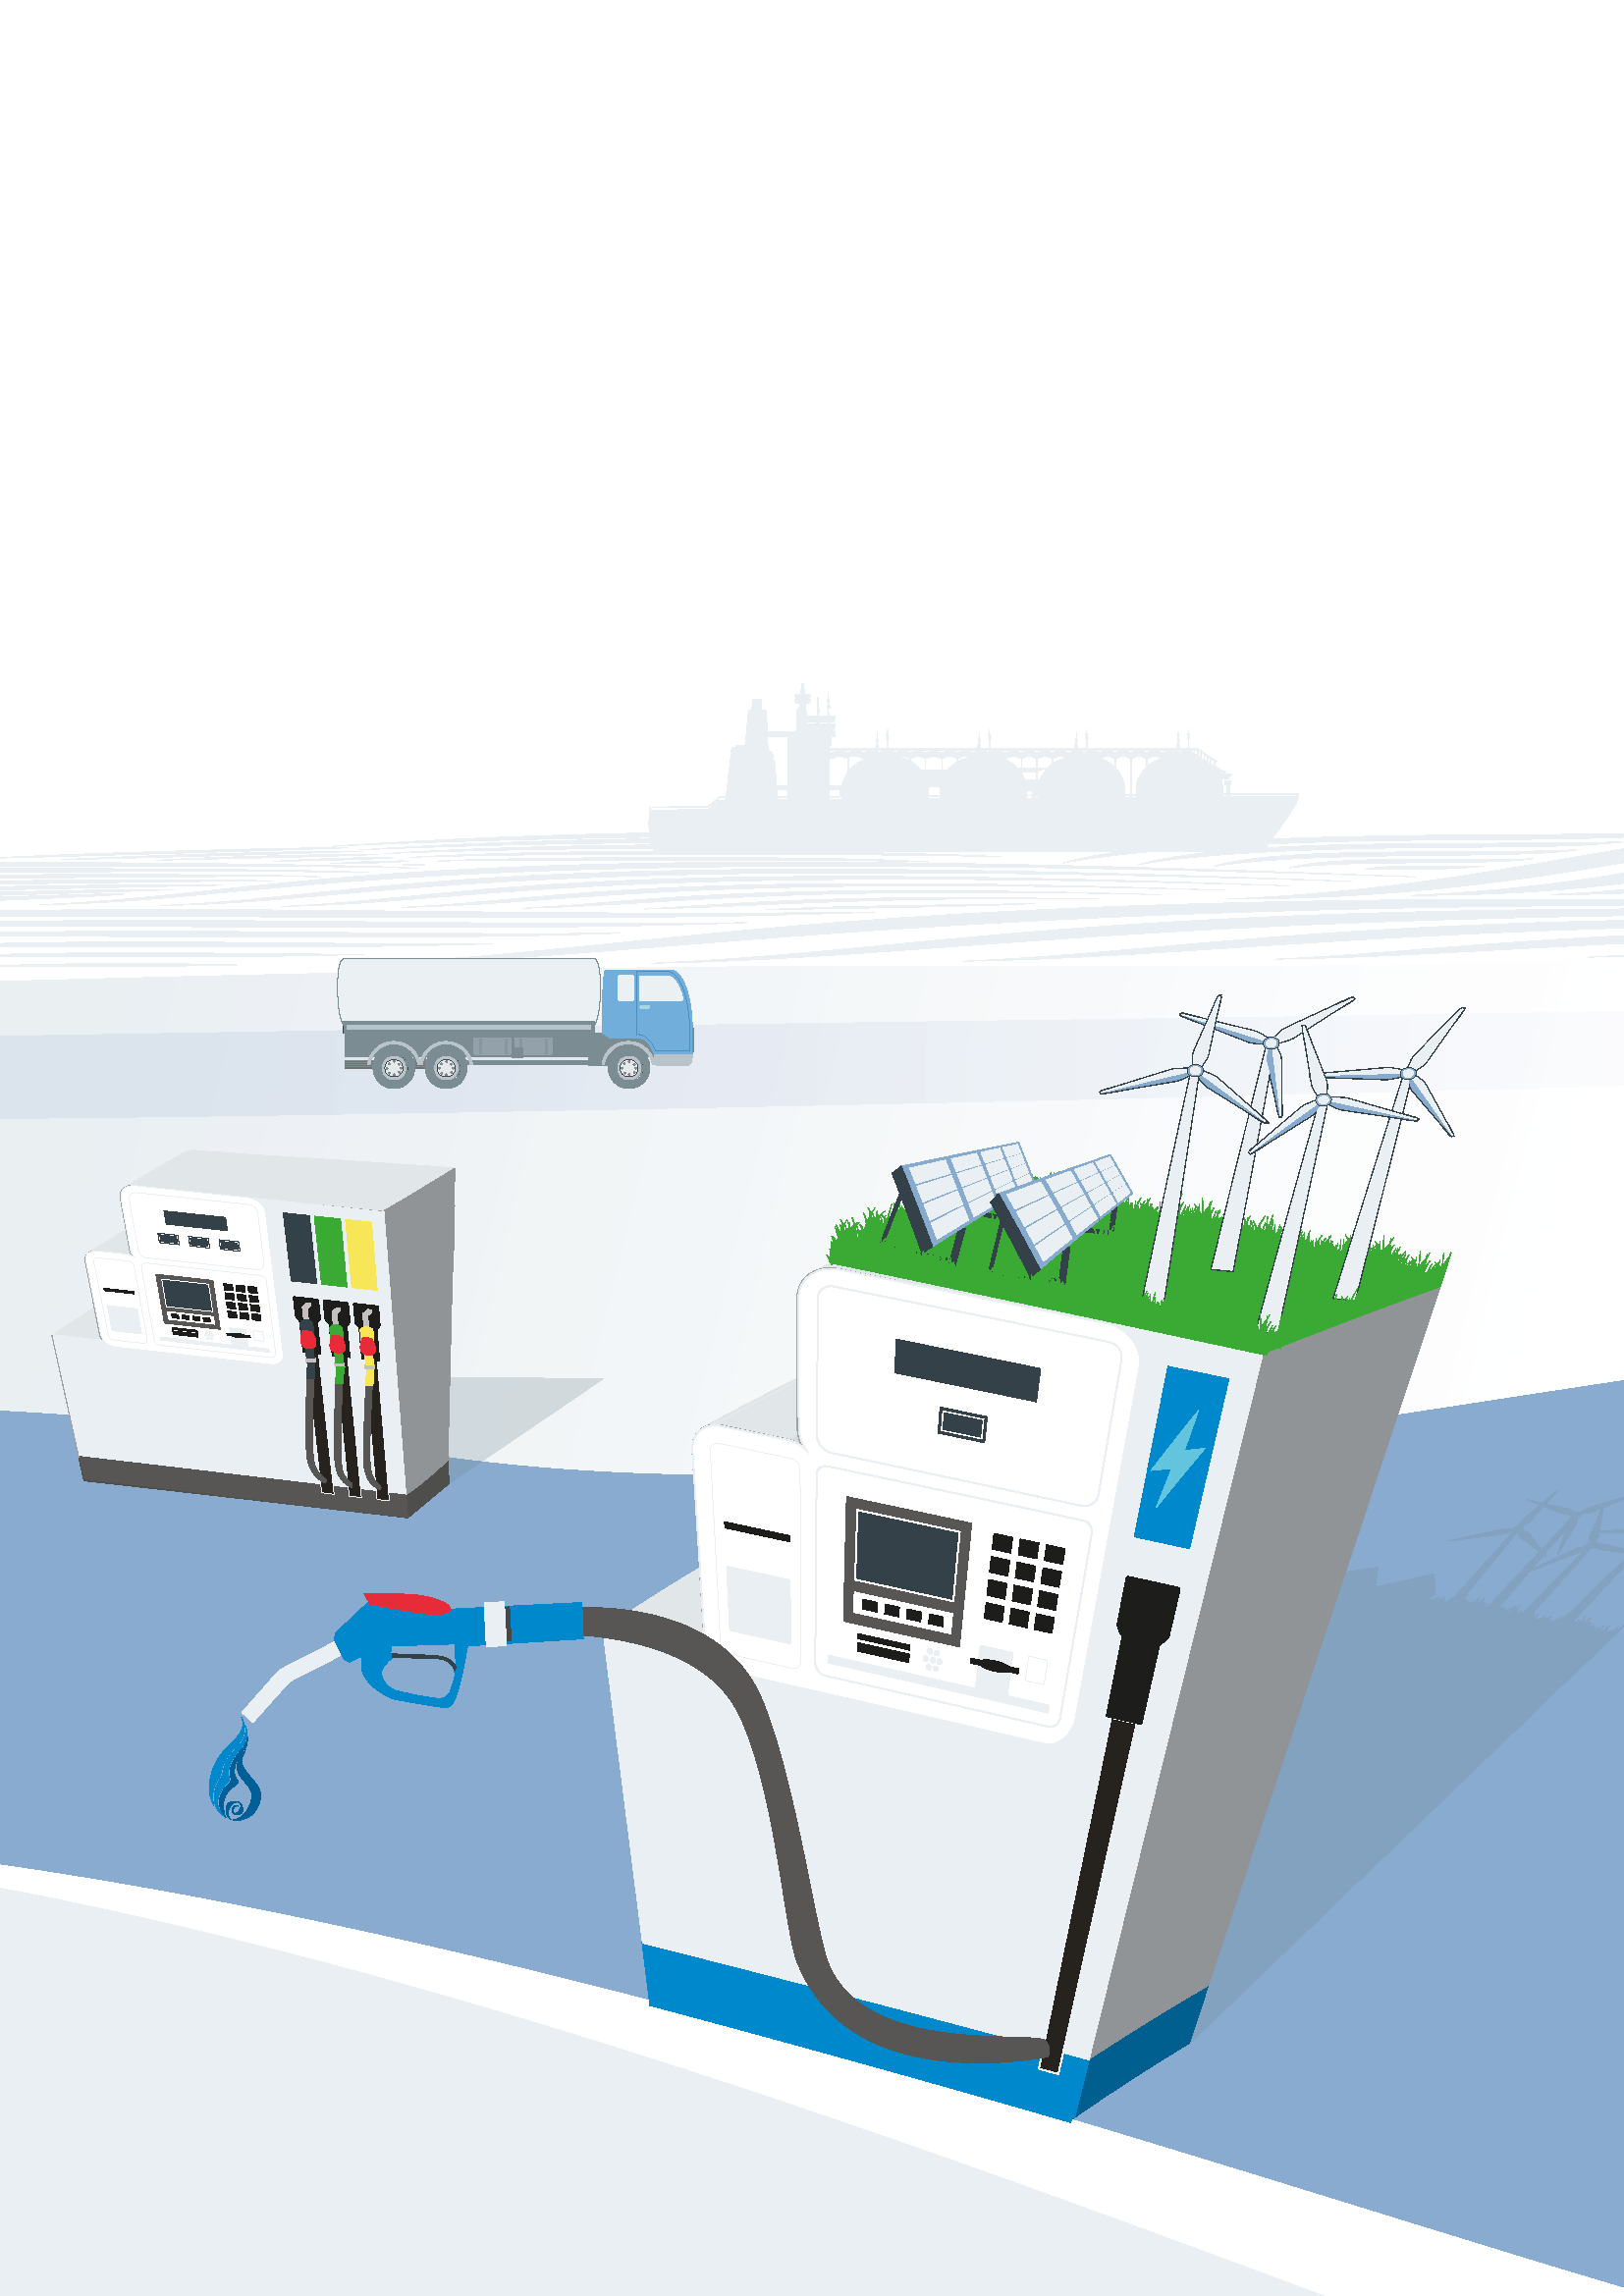 Cover image from Cerulogy's report on electromethane and electroammonia